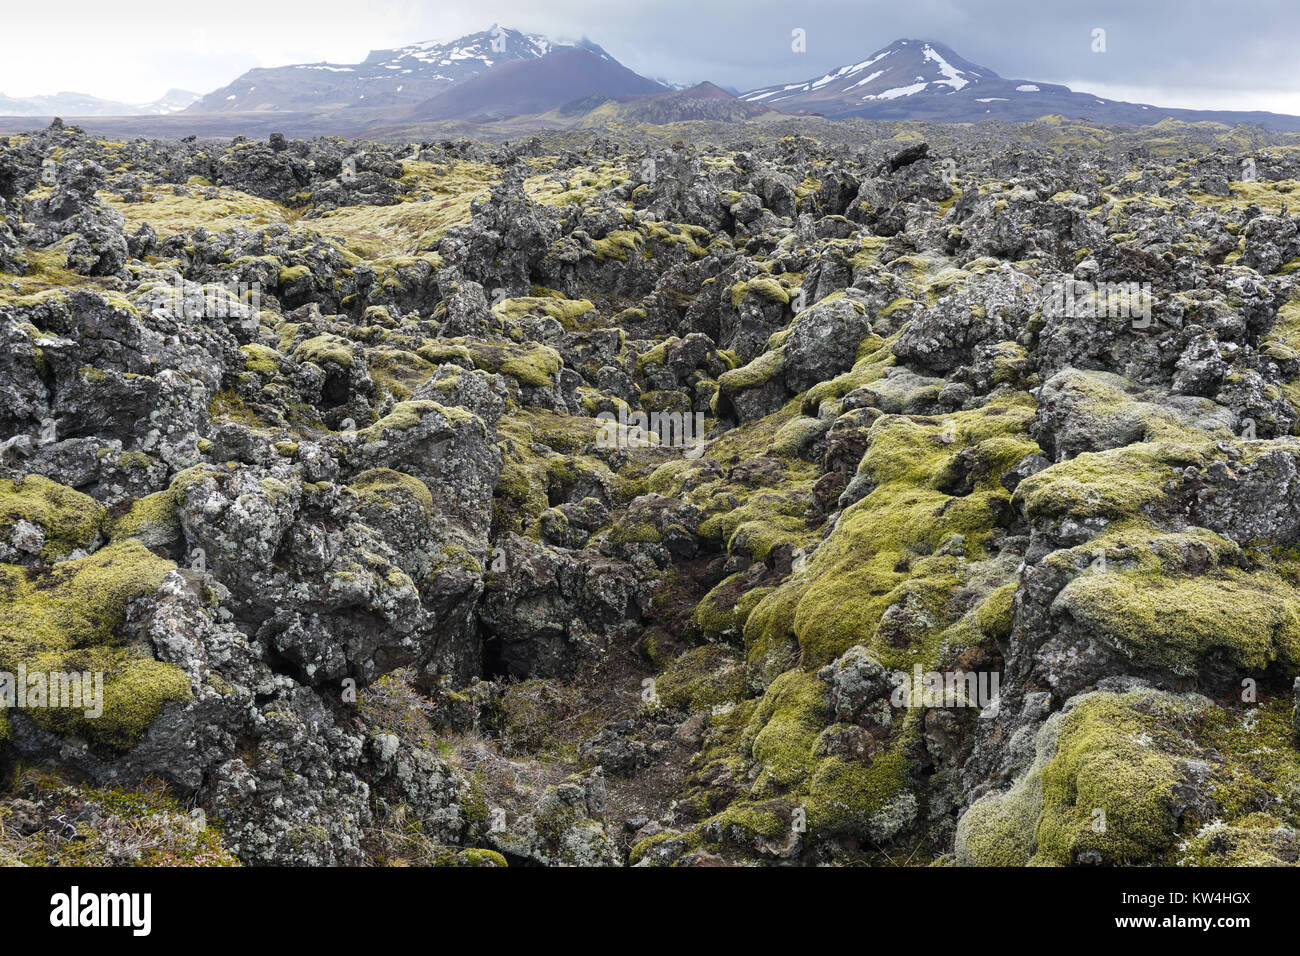 Moss covering the Berserkjahraun lava field between Stykkishólmur and Grundarfjörður in West Iceland. Stock Photo